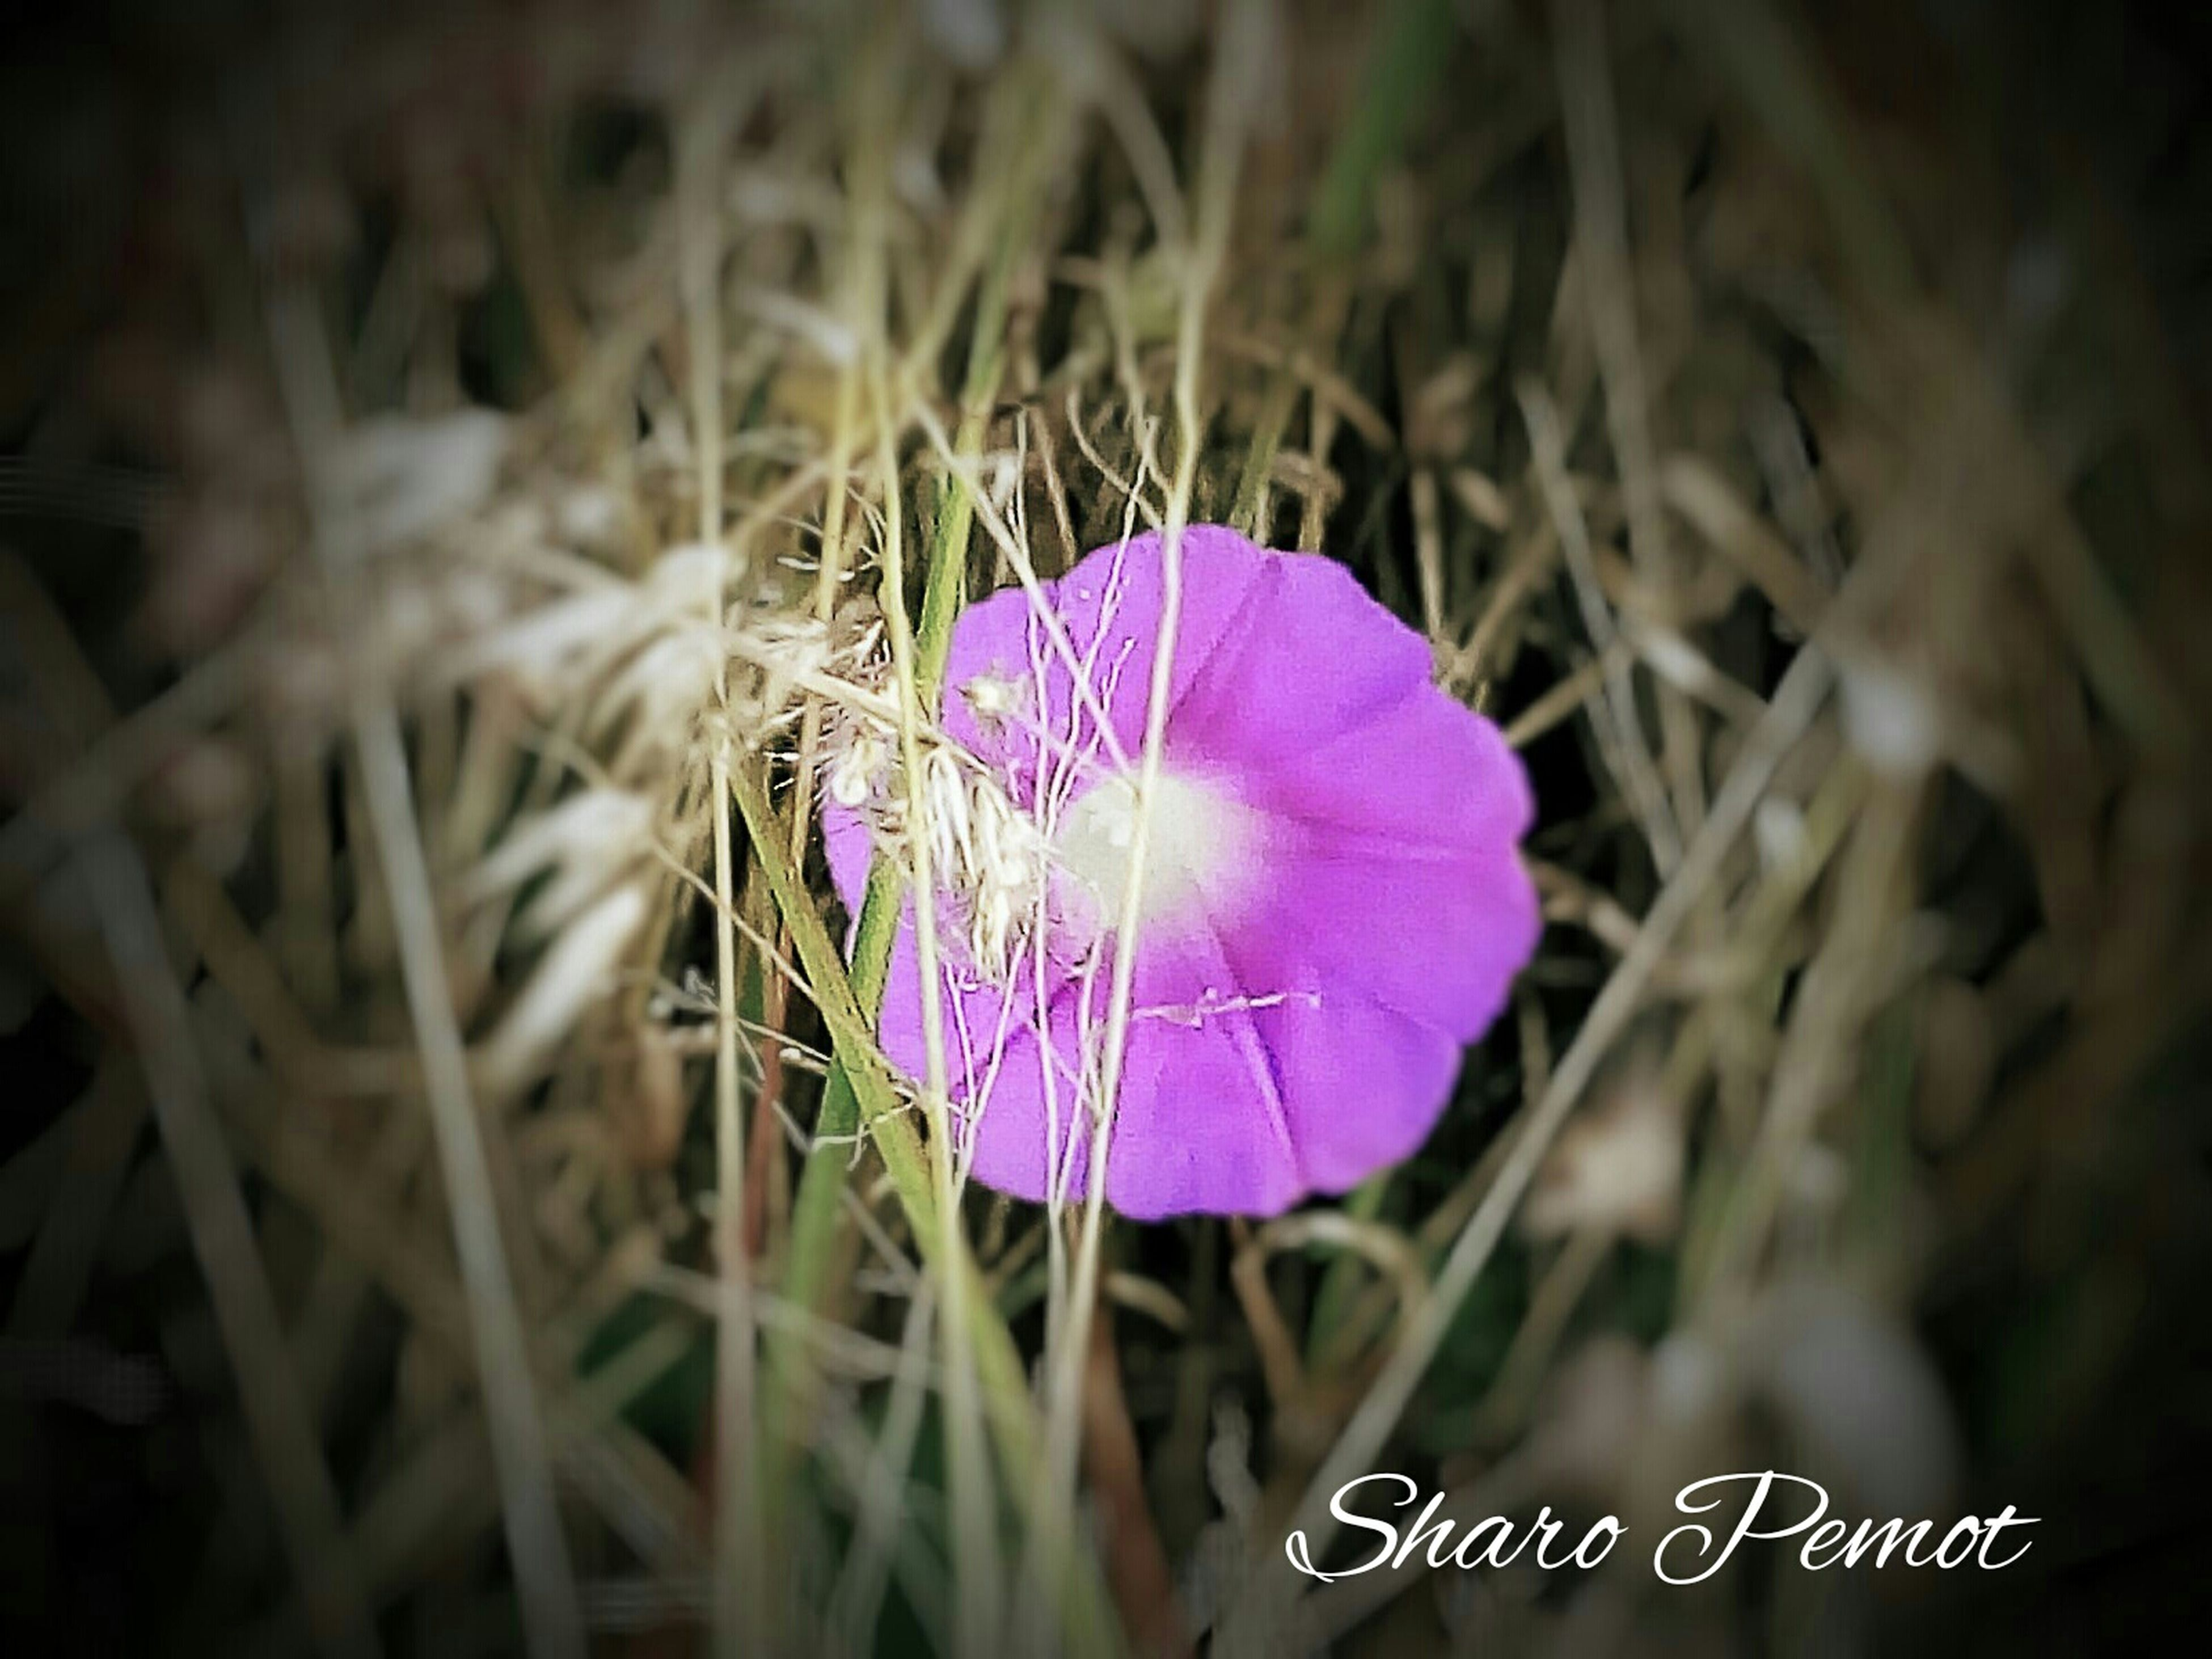 flower, purple, fragility, close-up, growth, freshness, flower head, focus on foreground, petal, beauty in nature, single flower, nature, plant, pink color, field, selective focus, stem, outdoors, no people, day